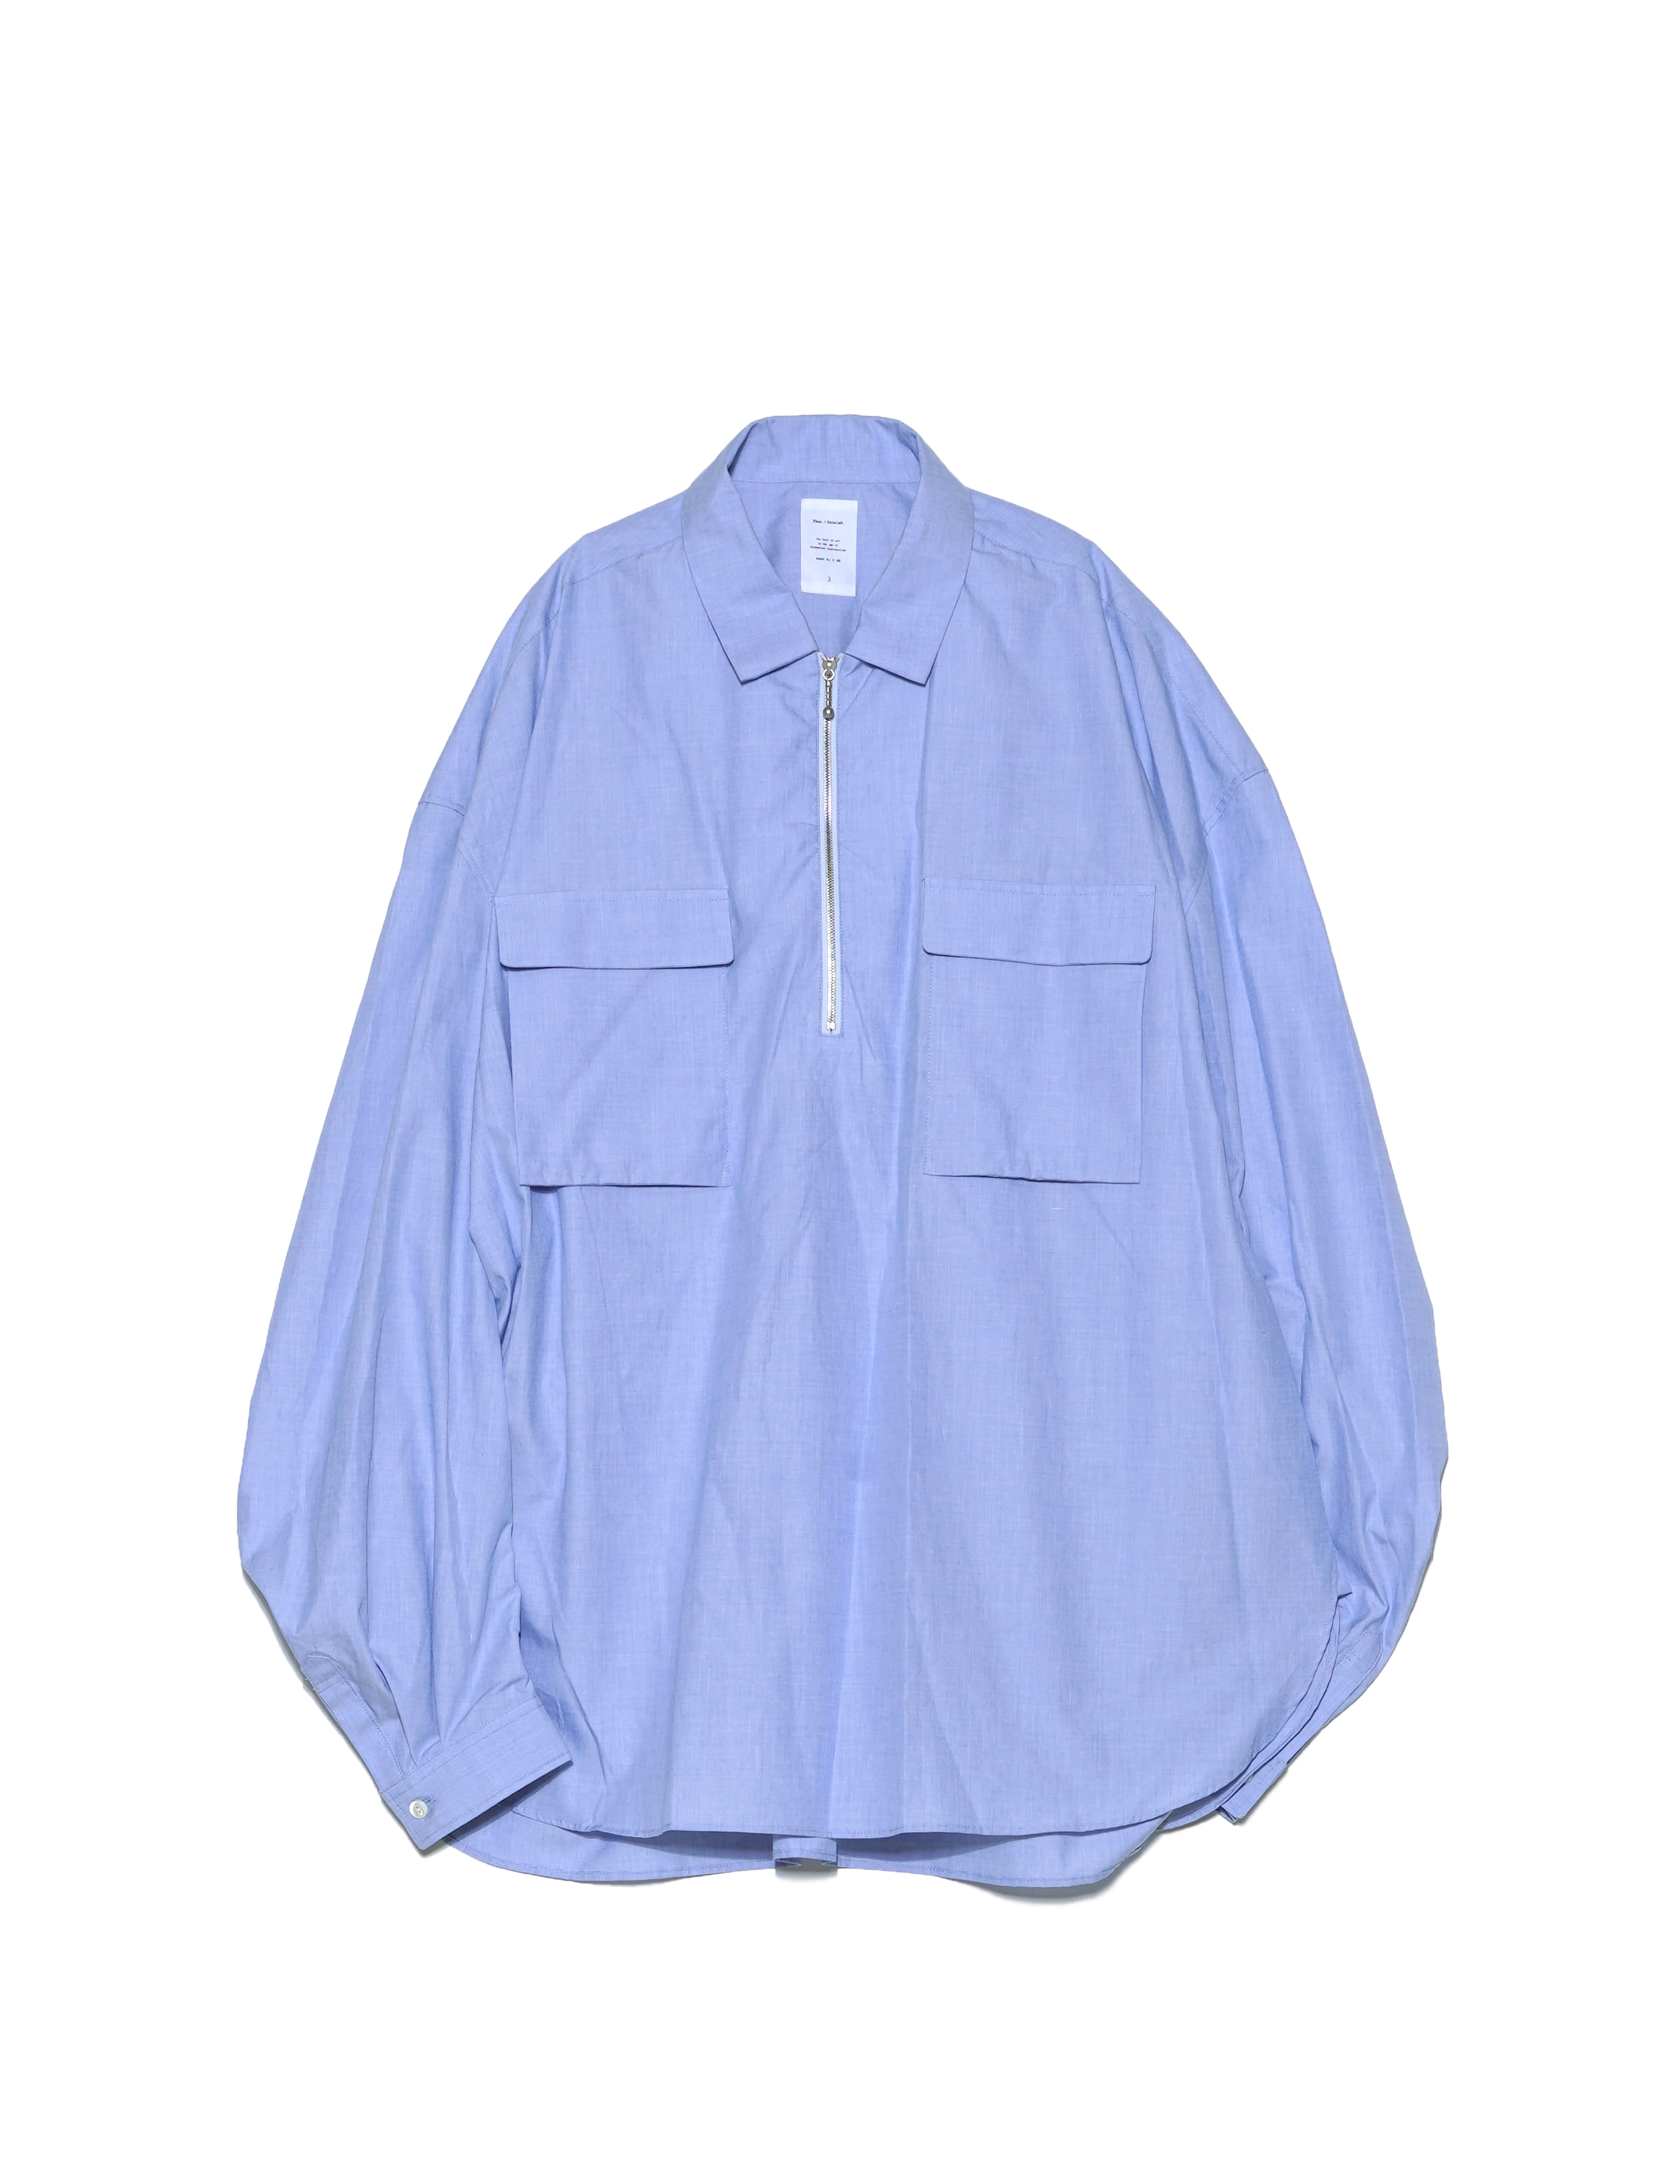 [Name.] COTTON CHAMBRAY ZIP SHIRT (SAX)